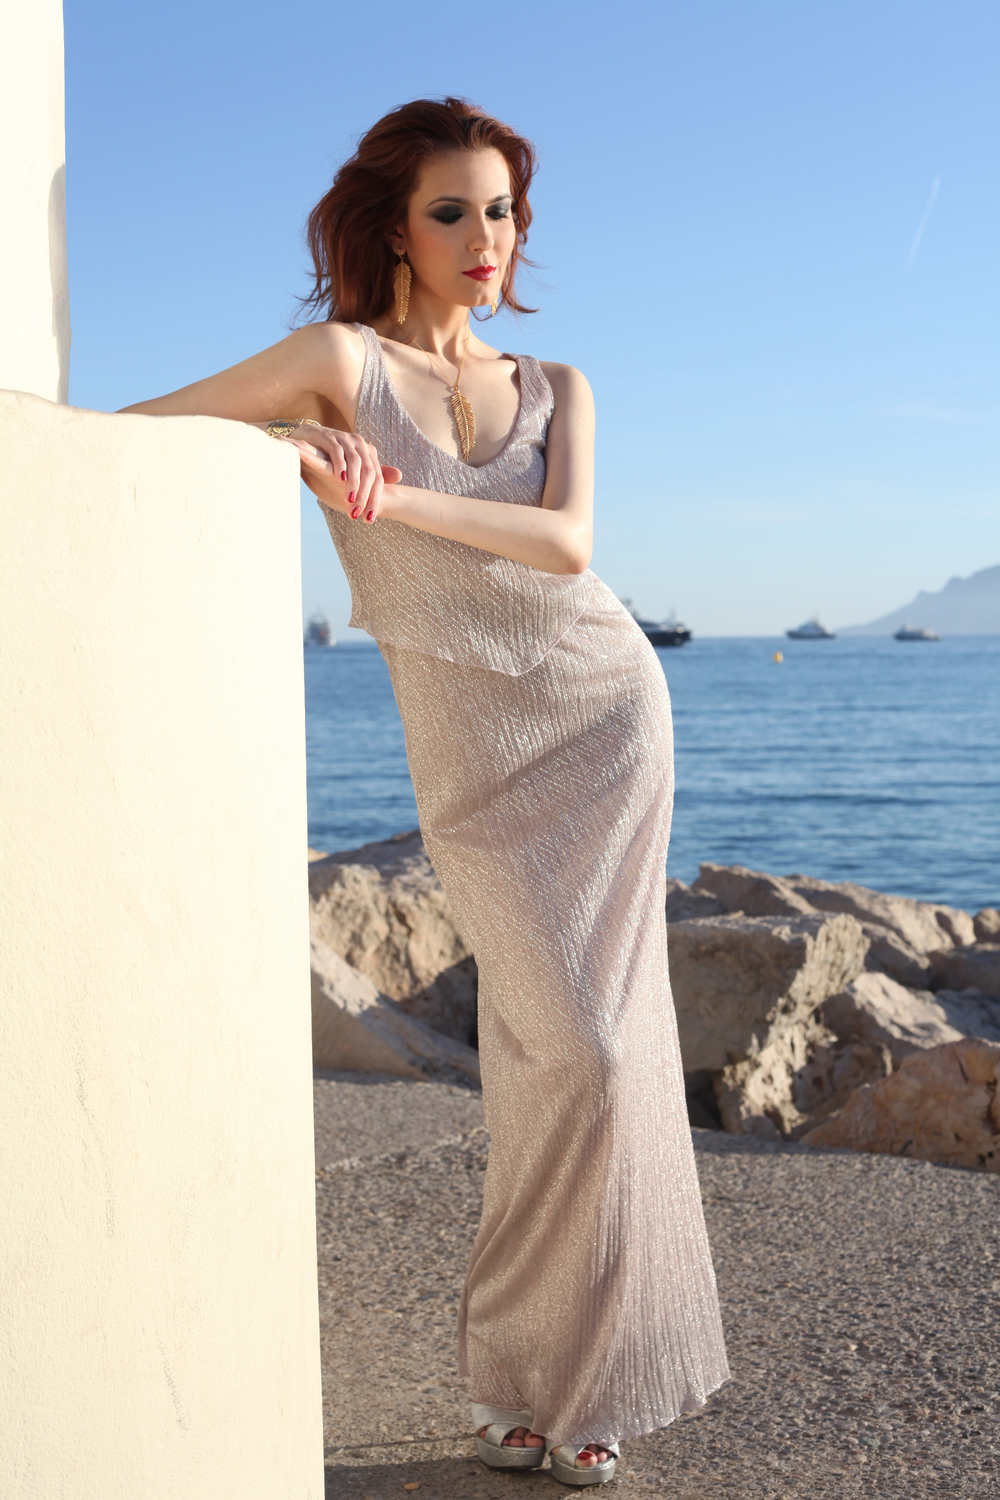 Cannes Promenade Photo Shoot May 2015 Professional Photo (132).jpg